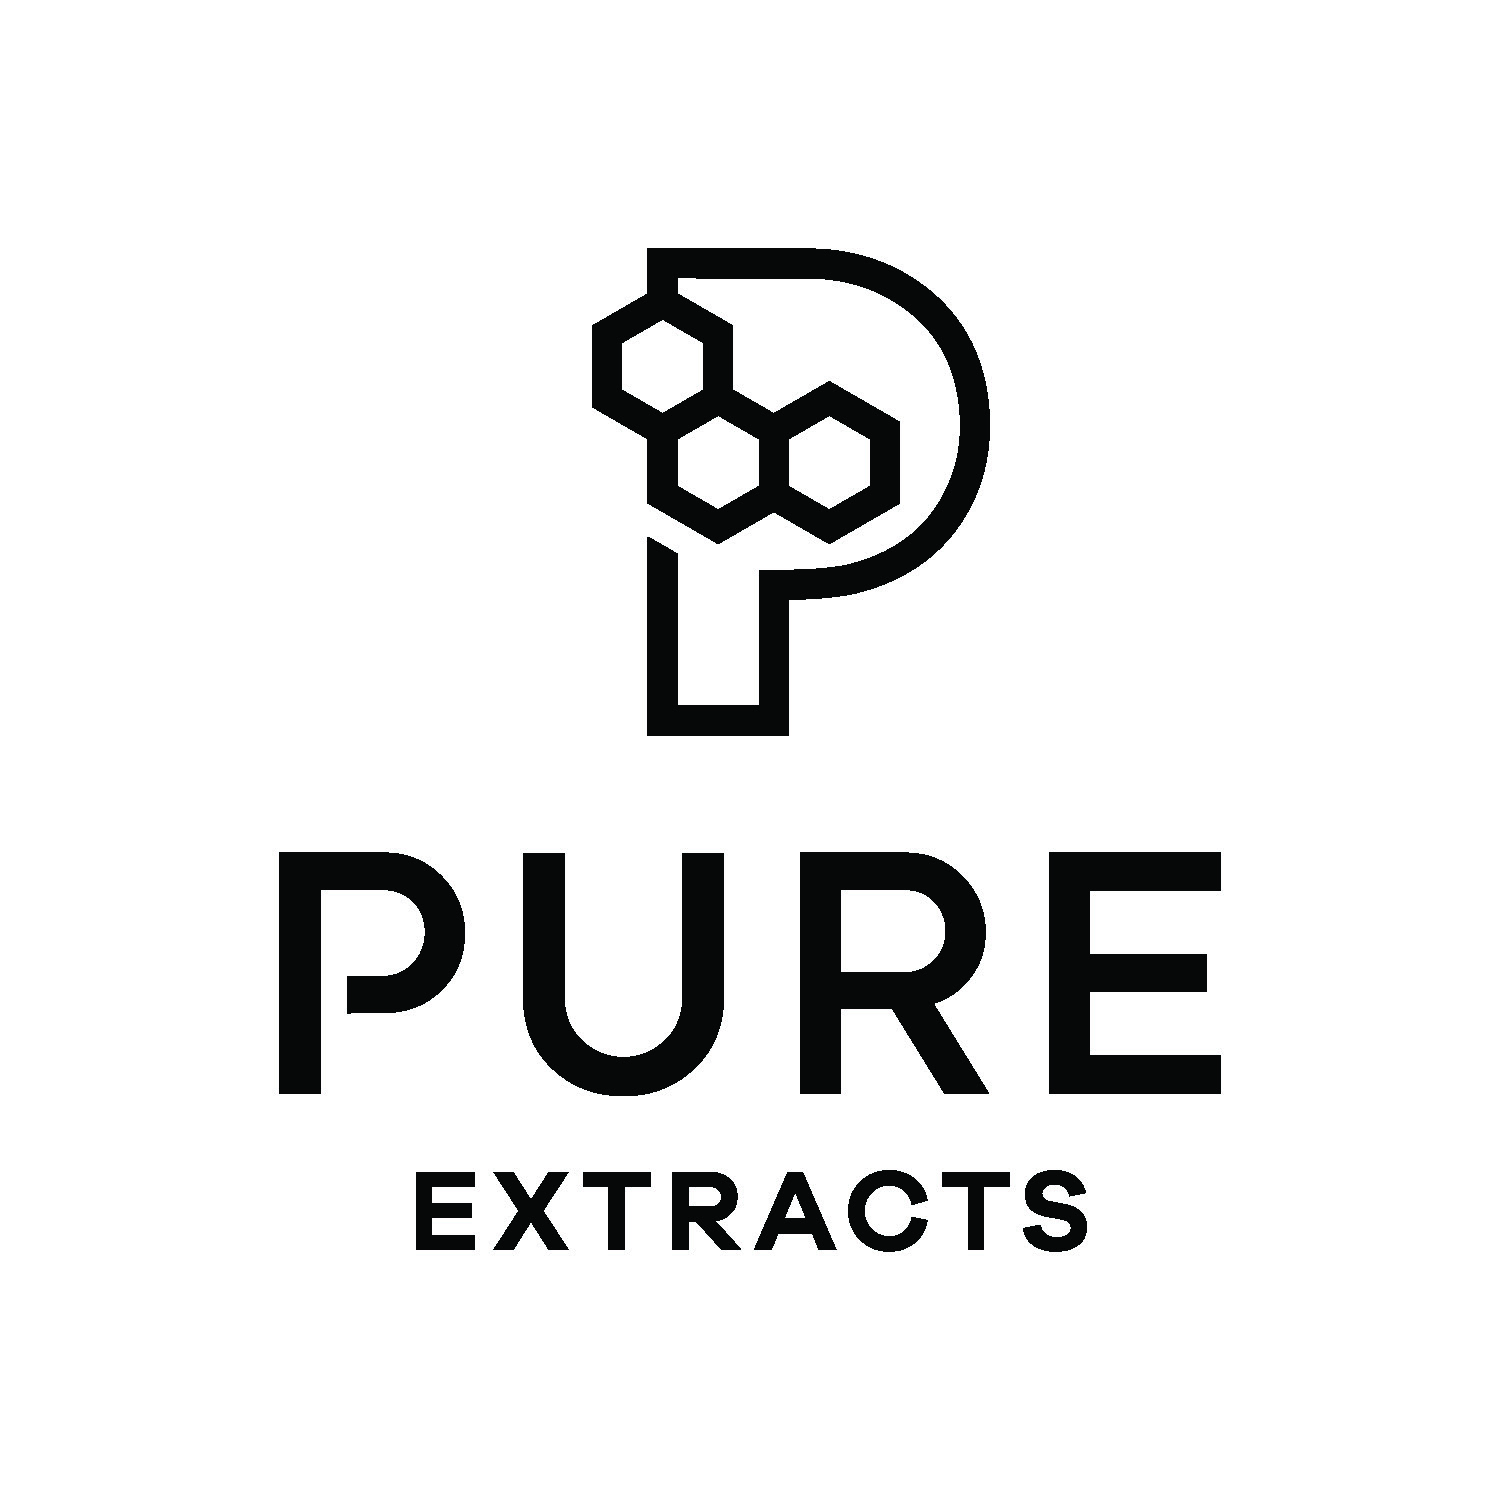 REPEAT - Pure Extracts Enters Into Biomass Purchase Agreements To Support Oil Extract Production